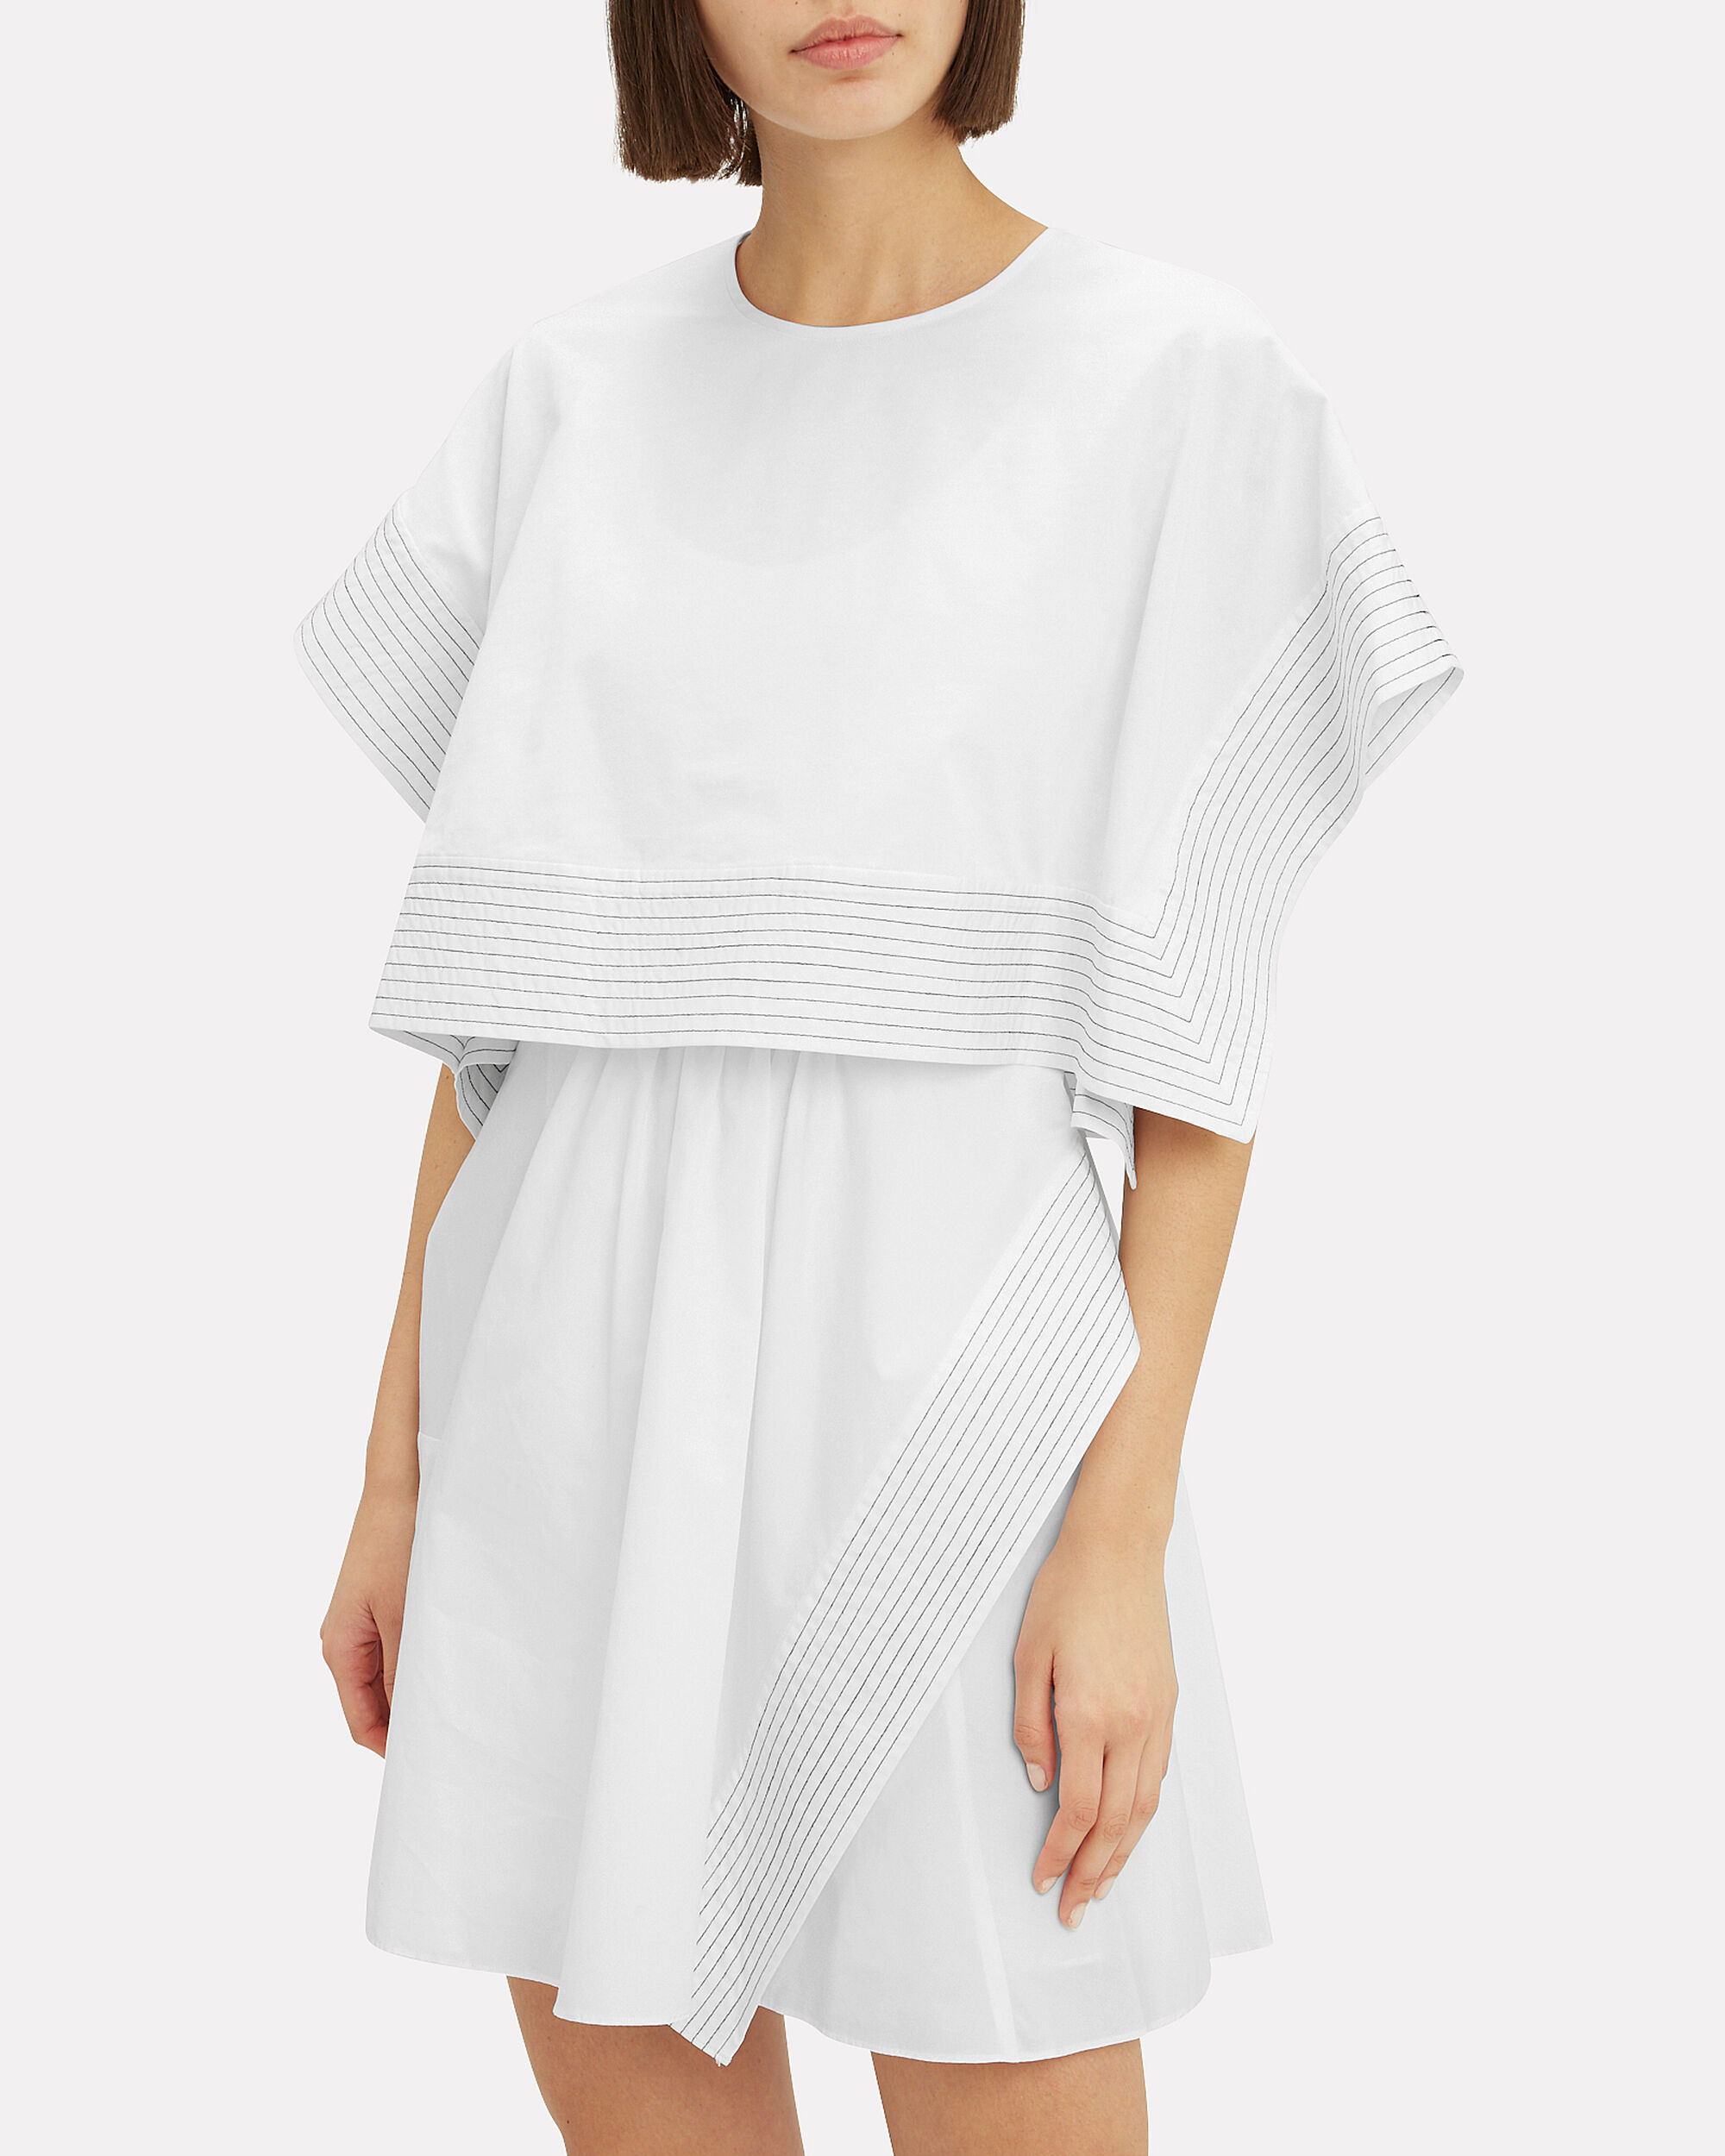 Boxy Crop Top Mini Dress, WHITE, hi-res